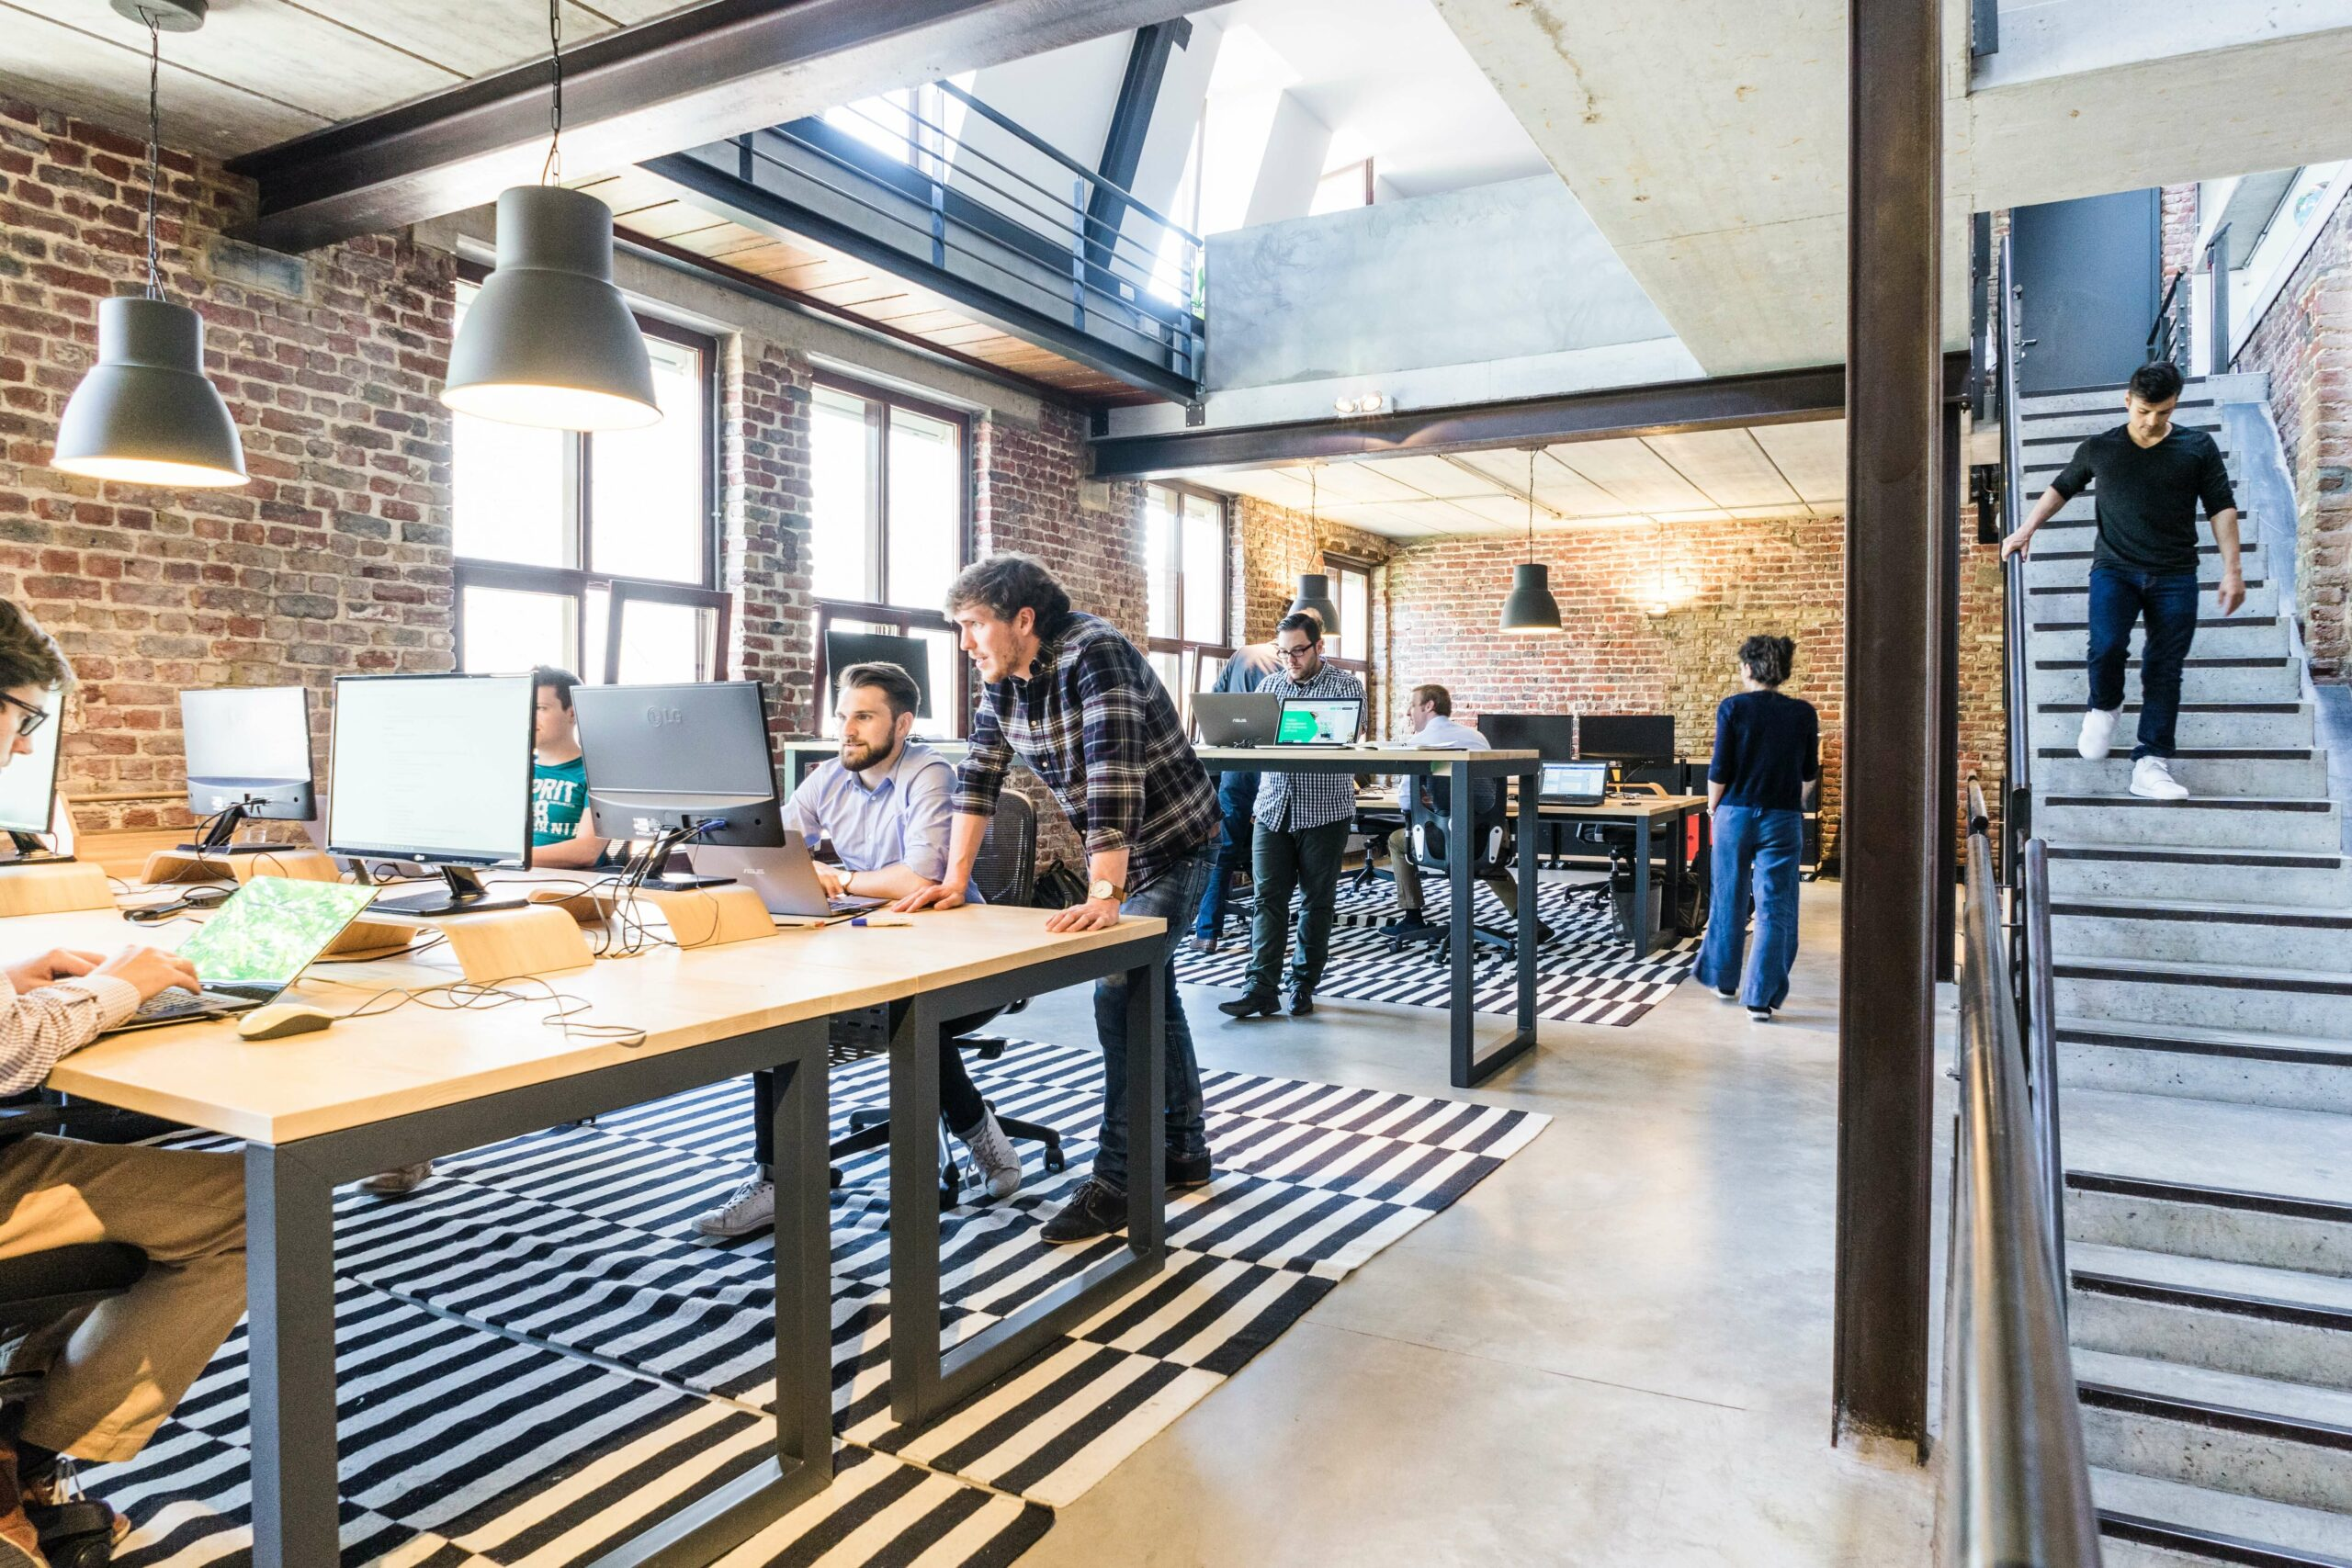 10 Best Coworking Spaces in Chennai for Startups, MSME's And Corporates That You Need to Know About